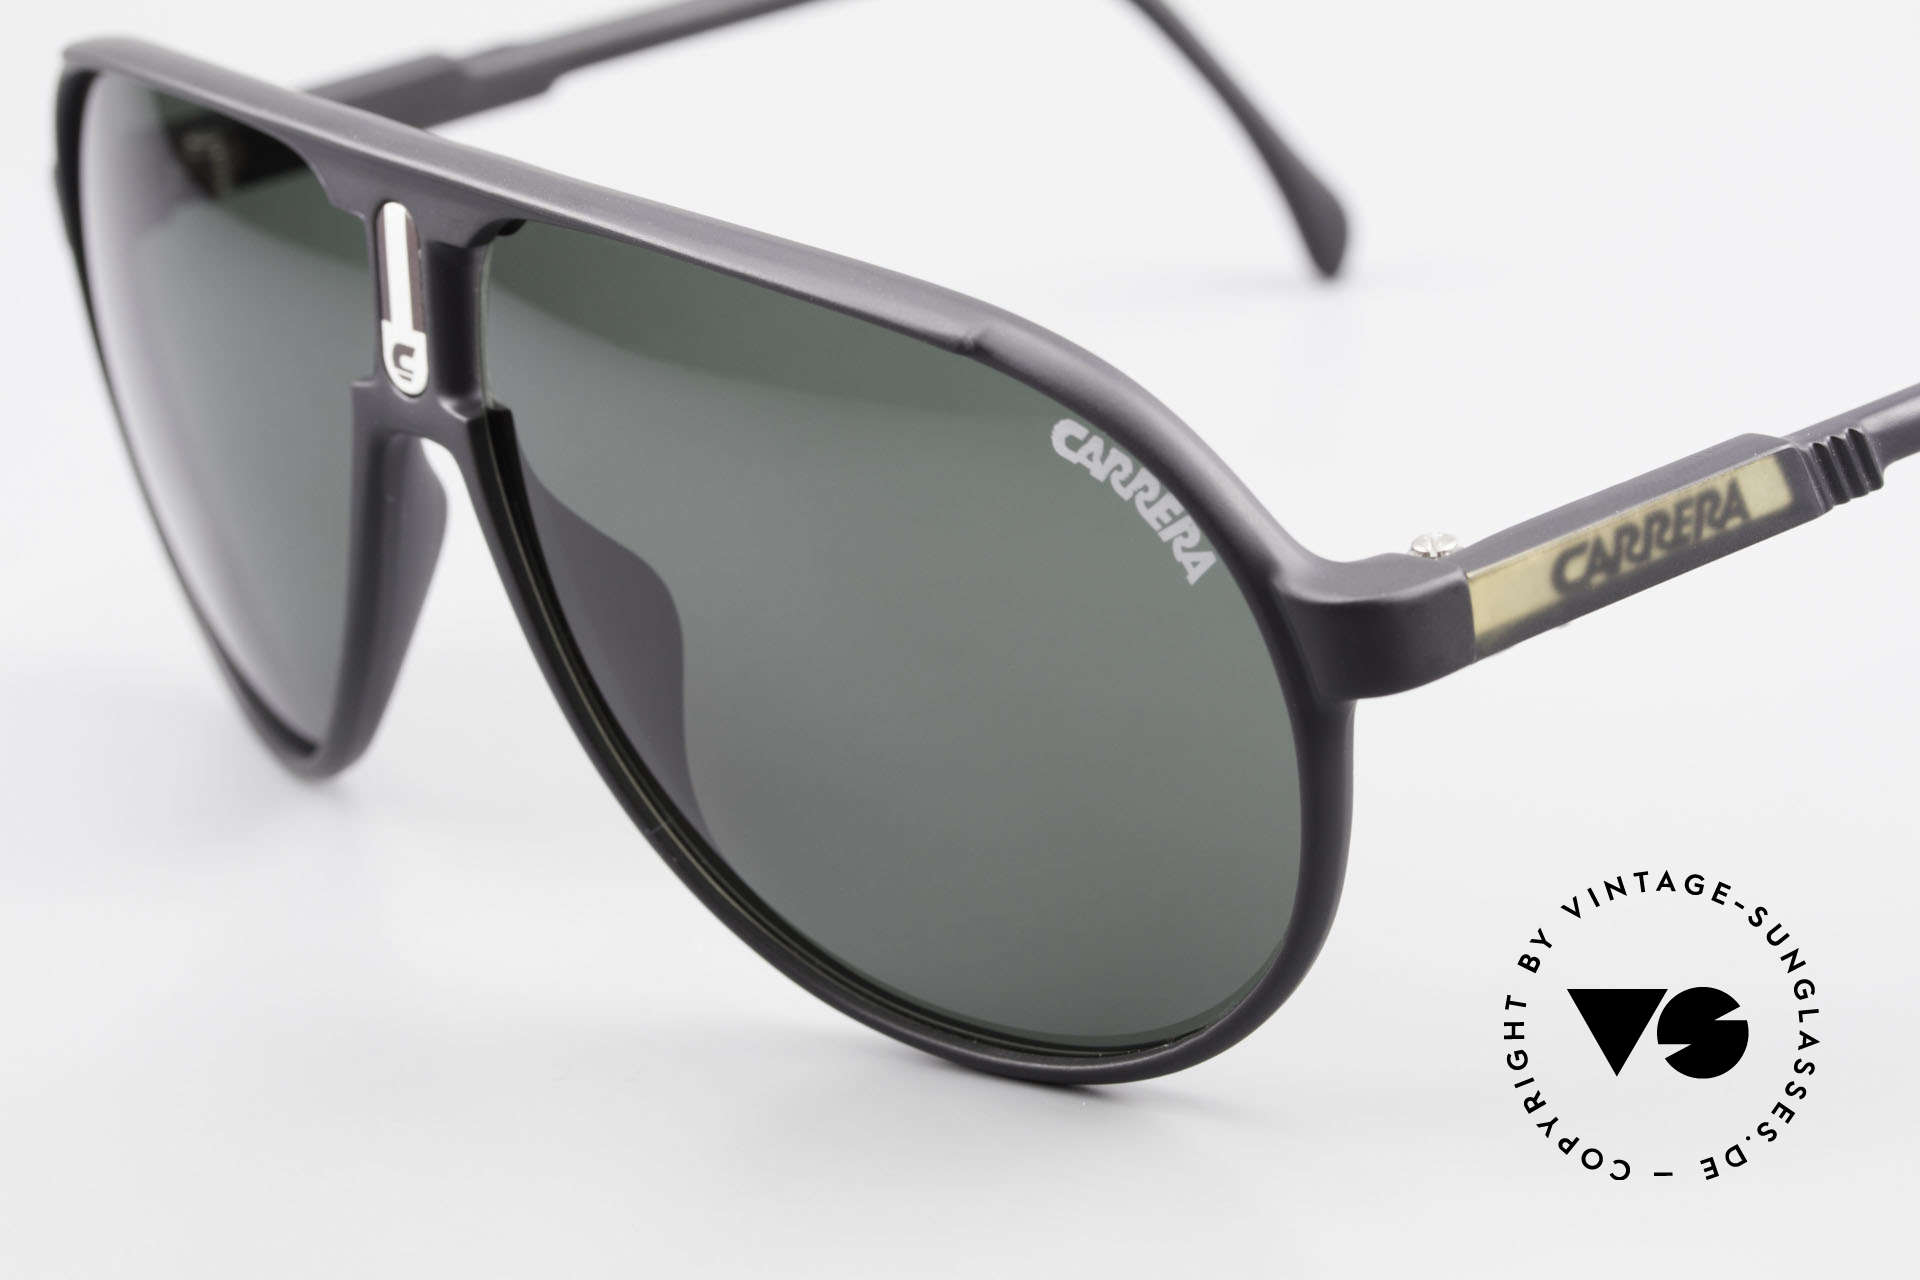 Carrera 5407 80's Sports Pilot's Sunglasses, built to last and made for many sport activities!, Made for Men